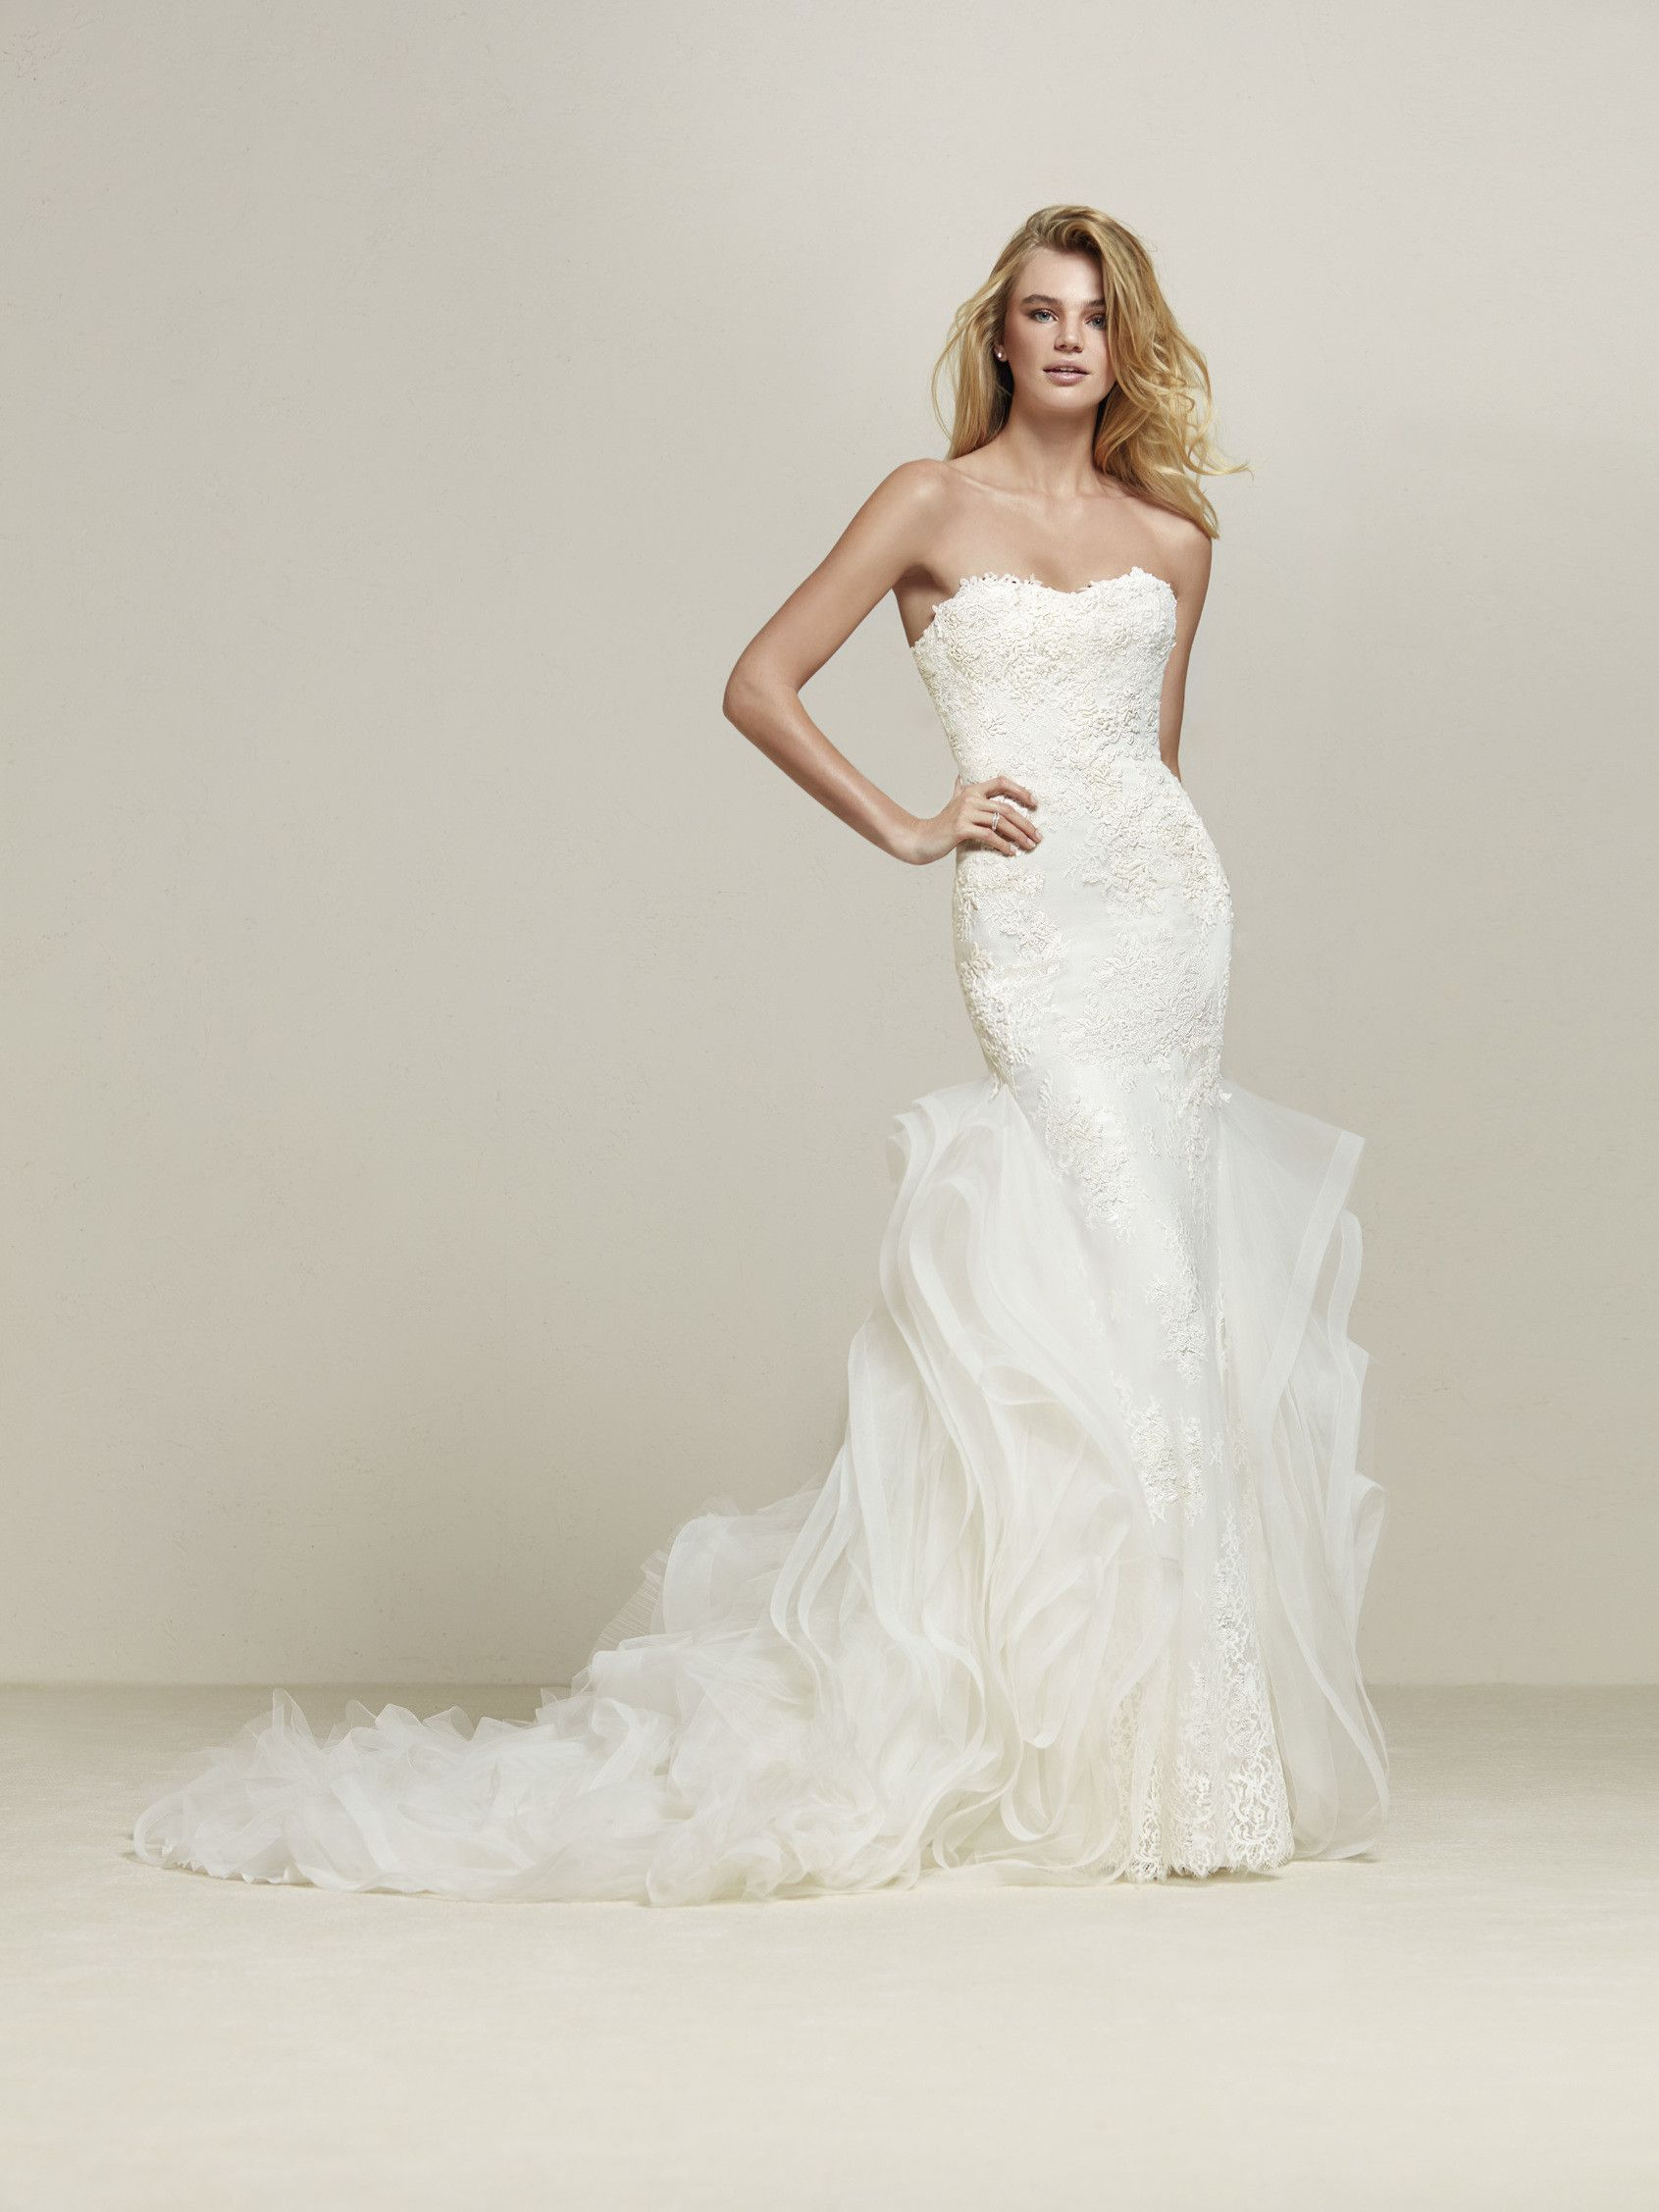 Incredible strapless sweetheart neckline pronovias drimila wedding